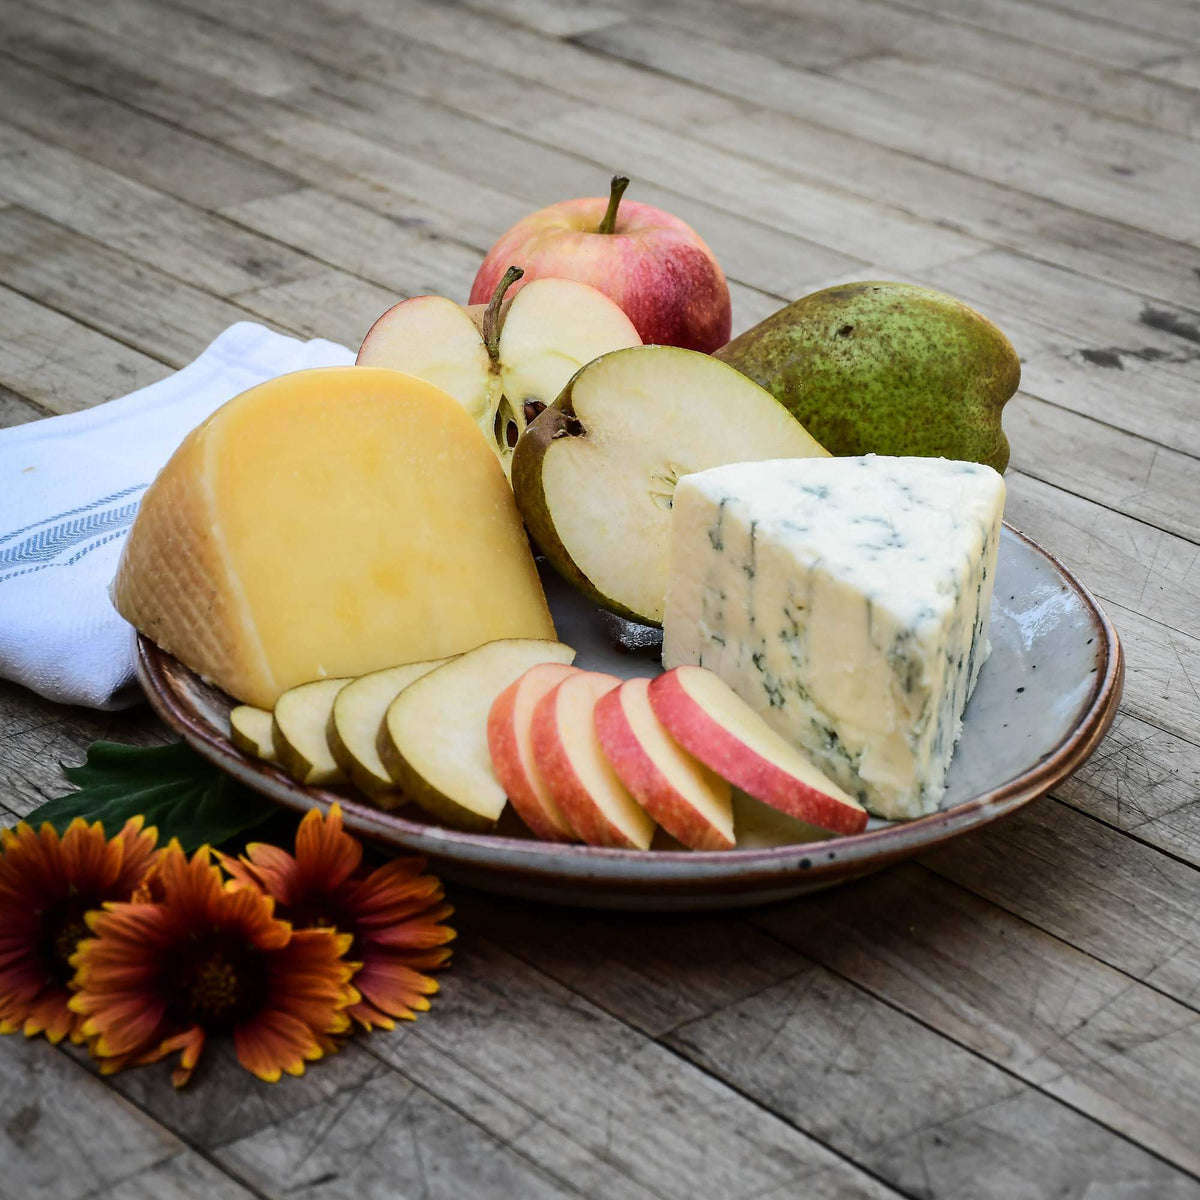 Pears, Apples & Cheese Box